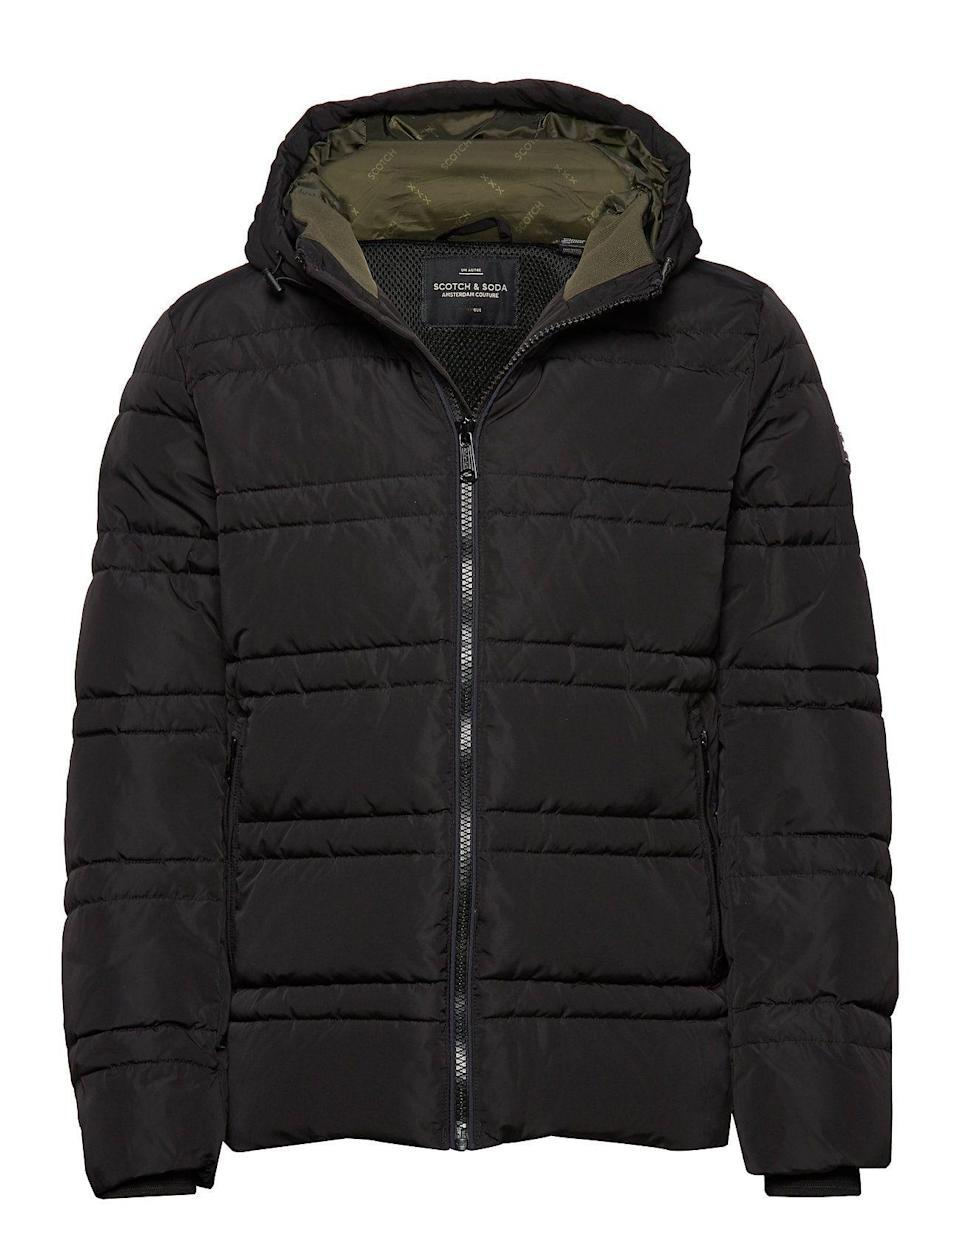 """<p><strong>Scotch & Soda</strong></p><p>amazon.com</p><p><strong>$139.99</strong></p><p><a href=""""https://www.amazon.com/dp/B07MSQ5KP2?tag=syn-yahoo-20&ascsubtag=%5Bartid%7C10063.g.34824549%5Bsrc%7Cyahoo-us"""" rel=""""nofollow noopener"""" target=""""_blank"""" data-ylk=""""slk:Shop Now"""" class=""""link rapid-noclick-resp"""">Shop Now</a></p><p>This jacket's detailed sleeves and tailored fit render it a sharp and timeless winter staple.</p>"""